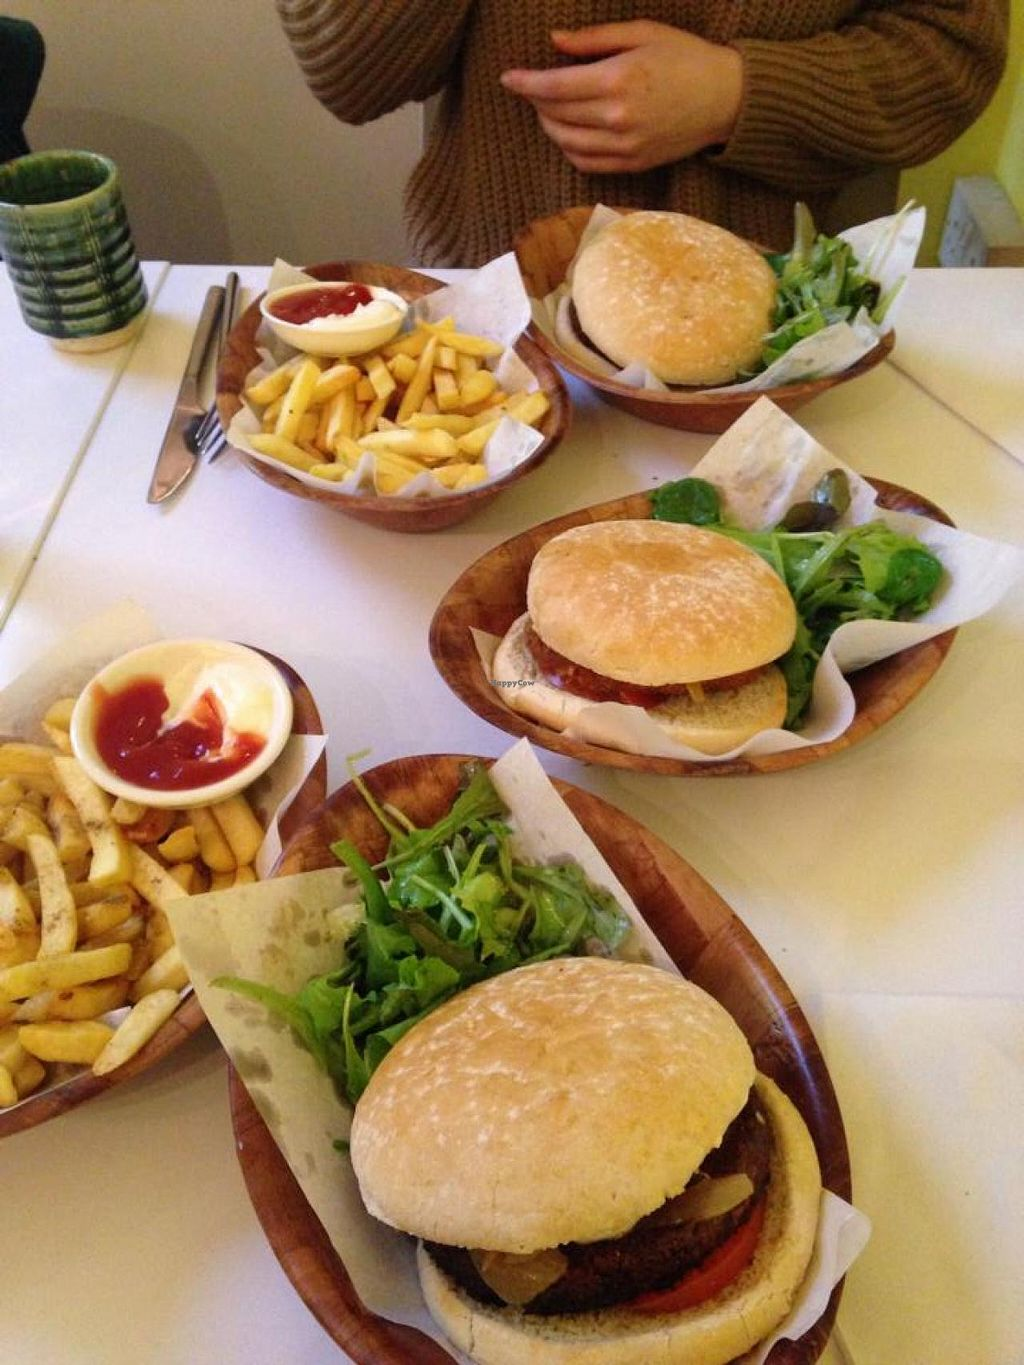 """Photo of Zen Buddha  by <a href=""""/members/profile/ColletteFarnol"""">ColletteFarnol</a> <br/>Burger and chips ( from loving hut camden- recently closed down) but loving hut edgware serve the burger and chips too! <br/> February 26, 2014  - <a href='/contact/abuse/image/14091/64855'>Report</a>"""